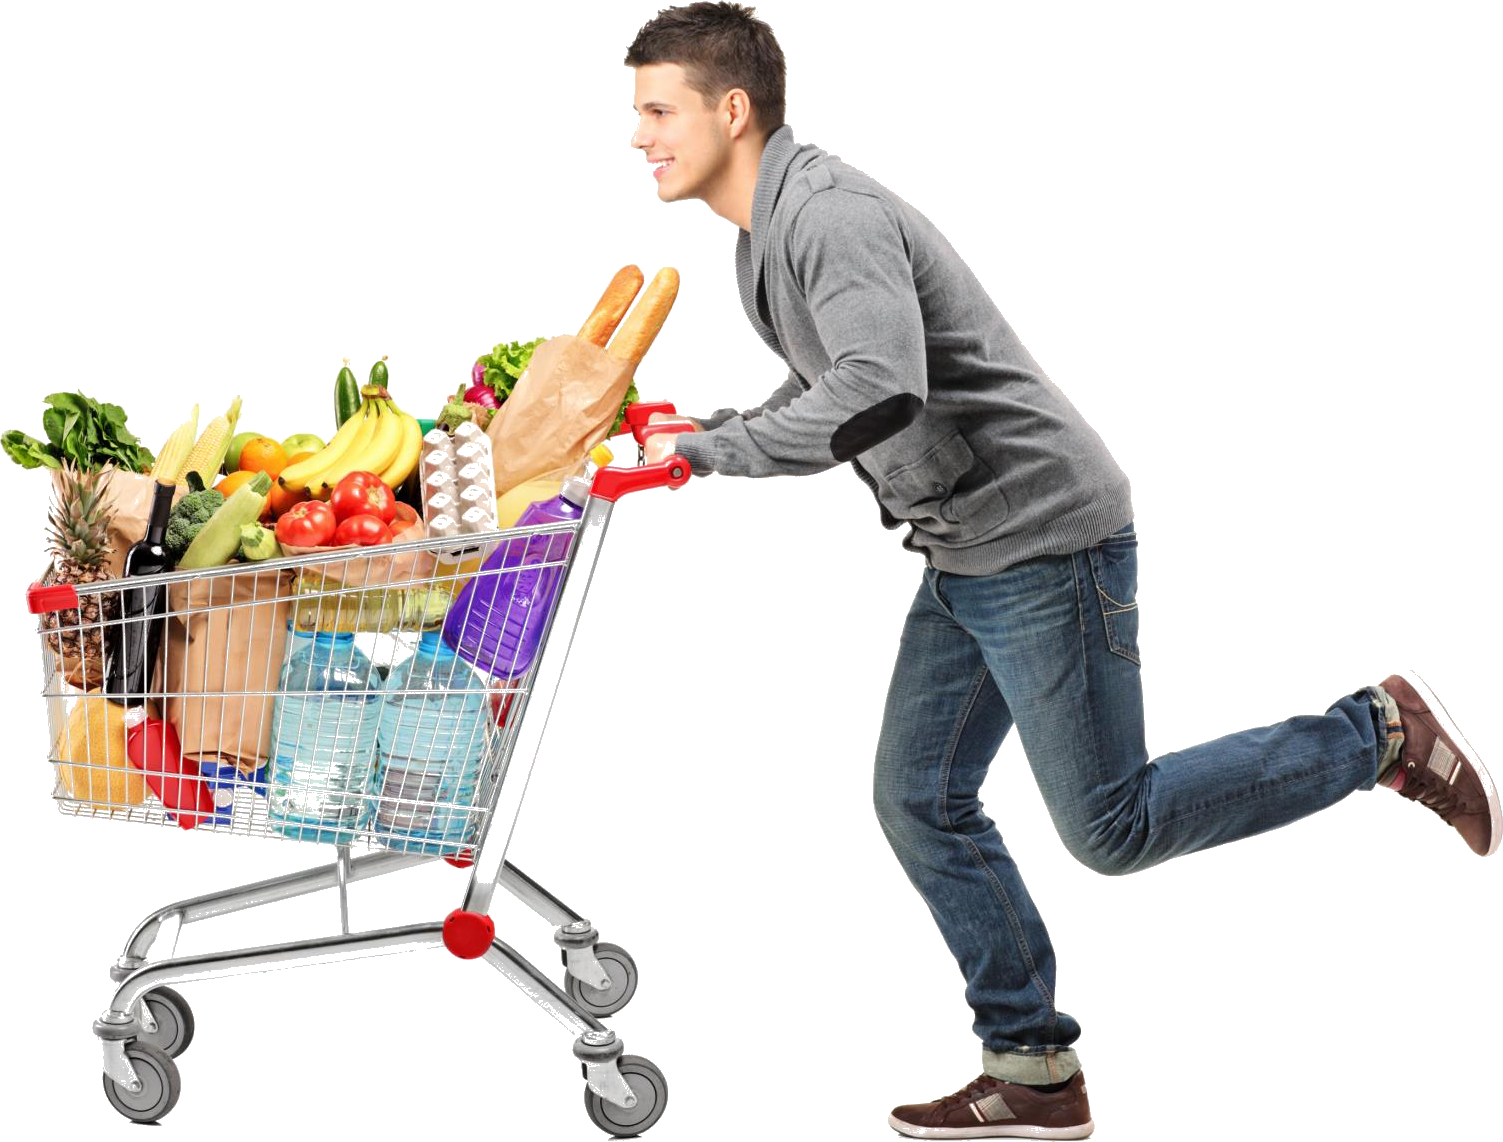 kisspng-shopping-cart-stock-photography-grocery-store-supermarket-5abf741c51d796-1896996915224965403352